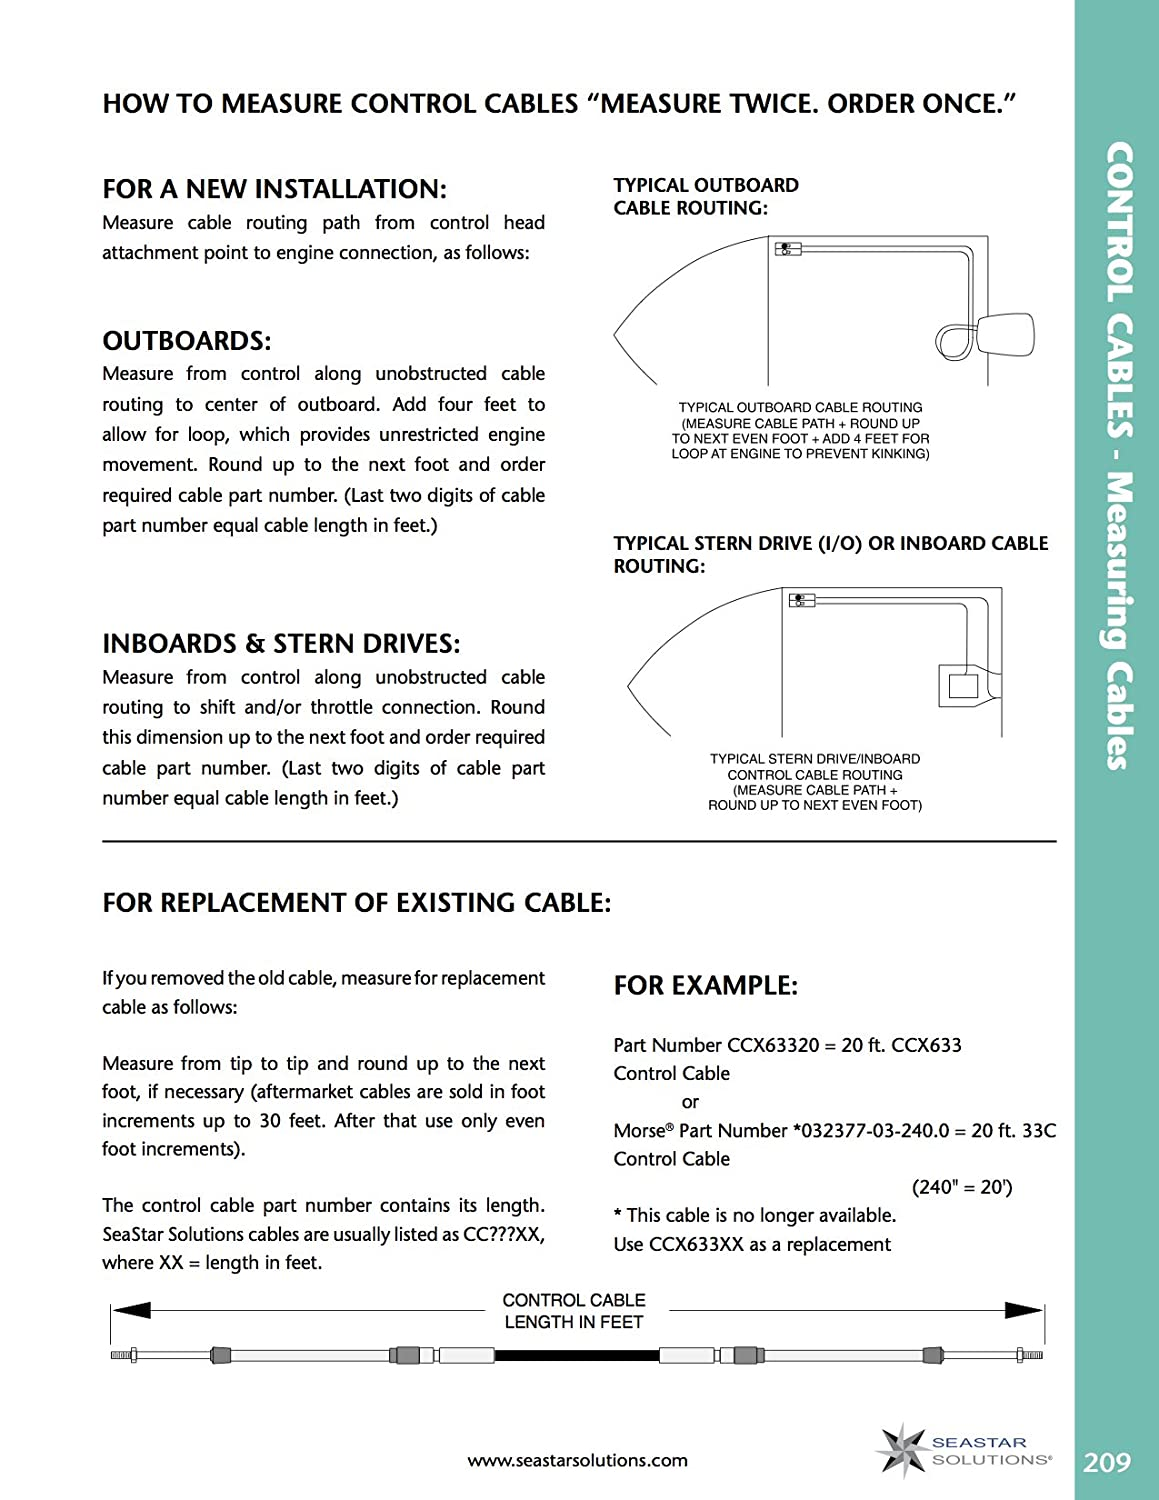 Seastar Ccx633xx Xtreme 3300 33c Type Control Cable With Nissan 3 0 Hp Outboard Wiring Diagram 10 32 Threaded Ends Sports Outdoors